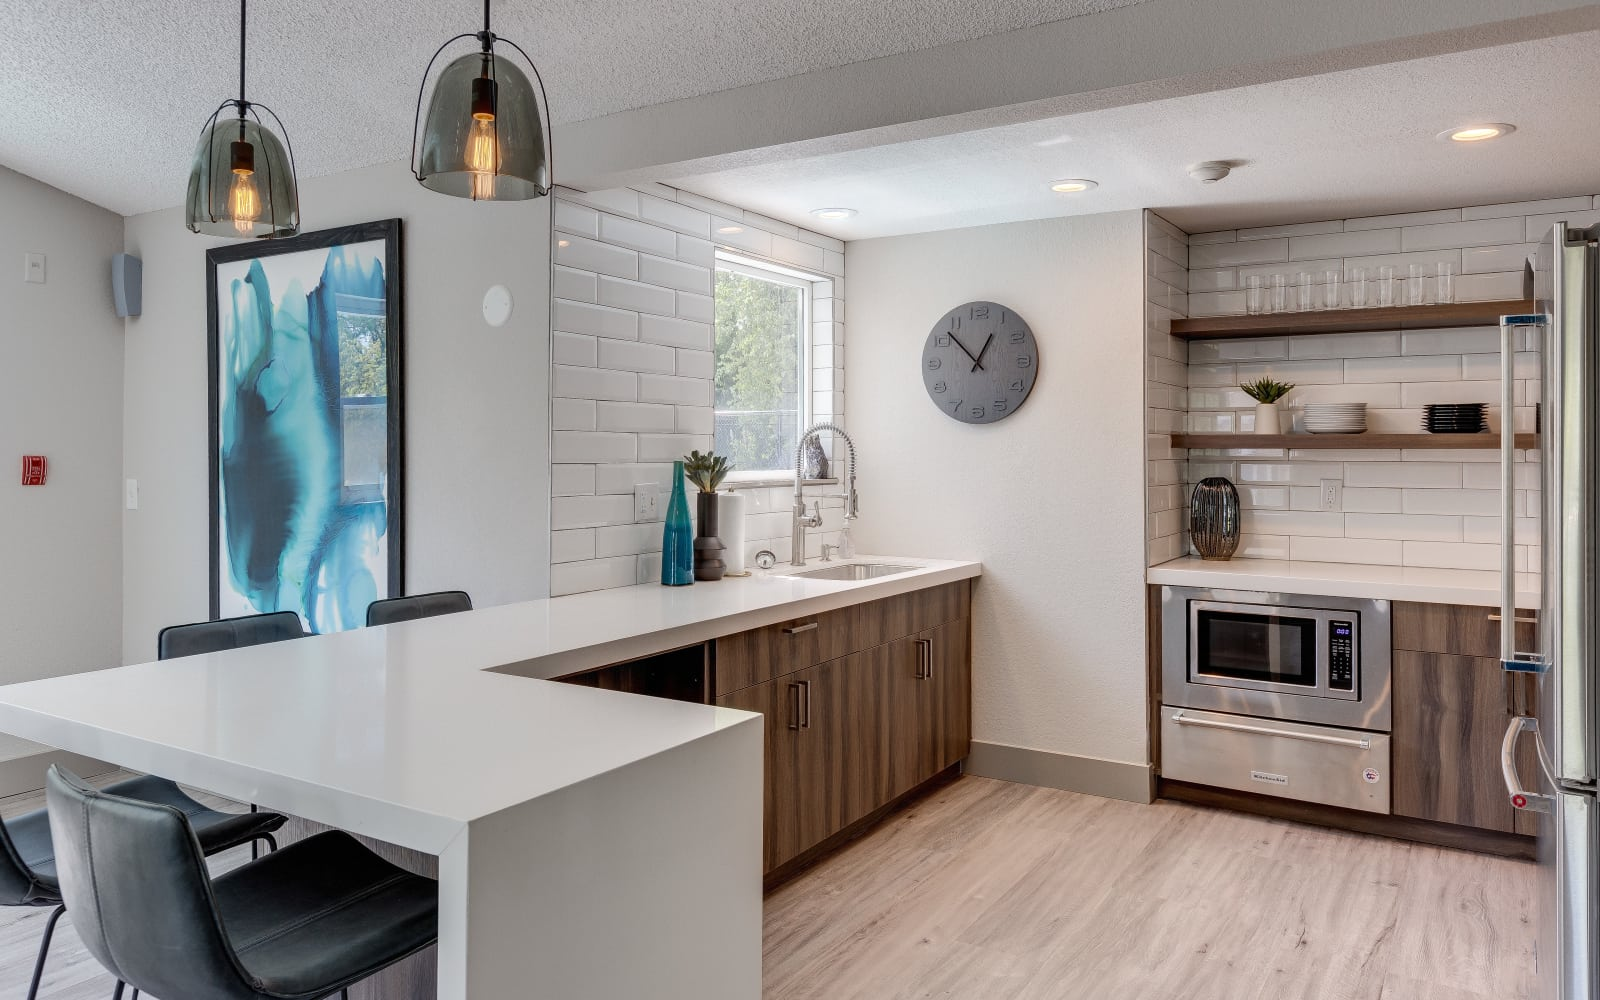 Kitchen with state-of-the-art appliances at Alaire Apartments in Renton, Washington